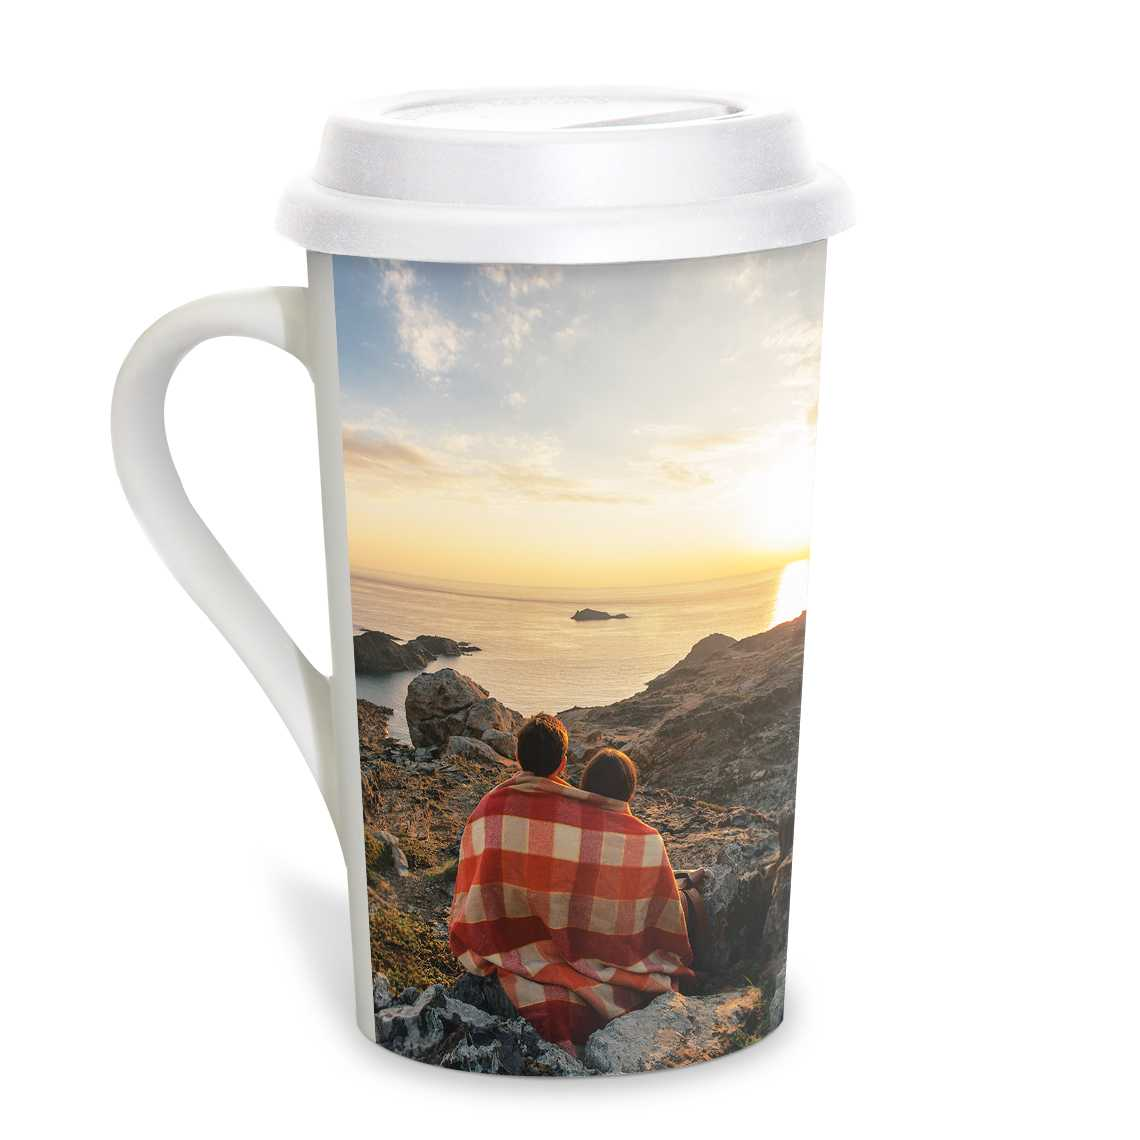 grande coffee mug with lid 16oz grande coffee mug 16 oz with